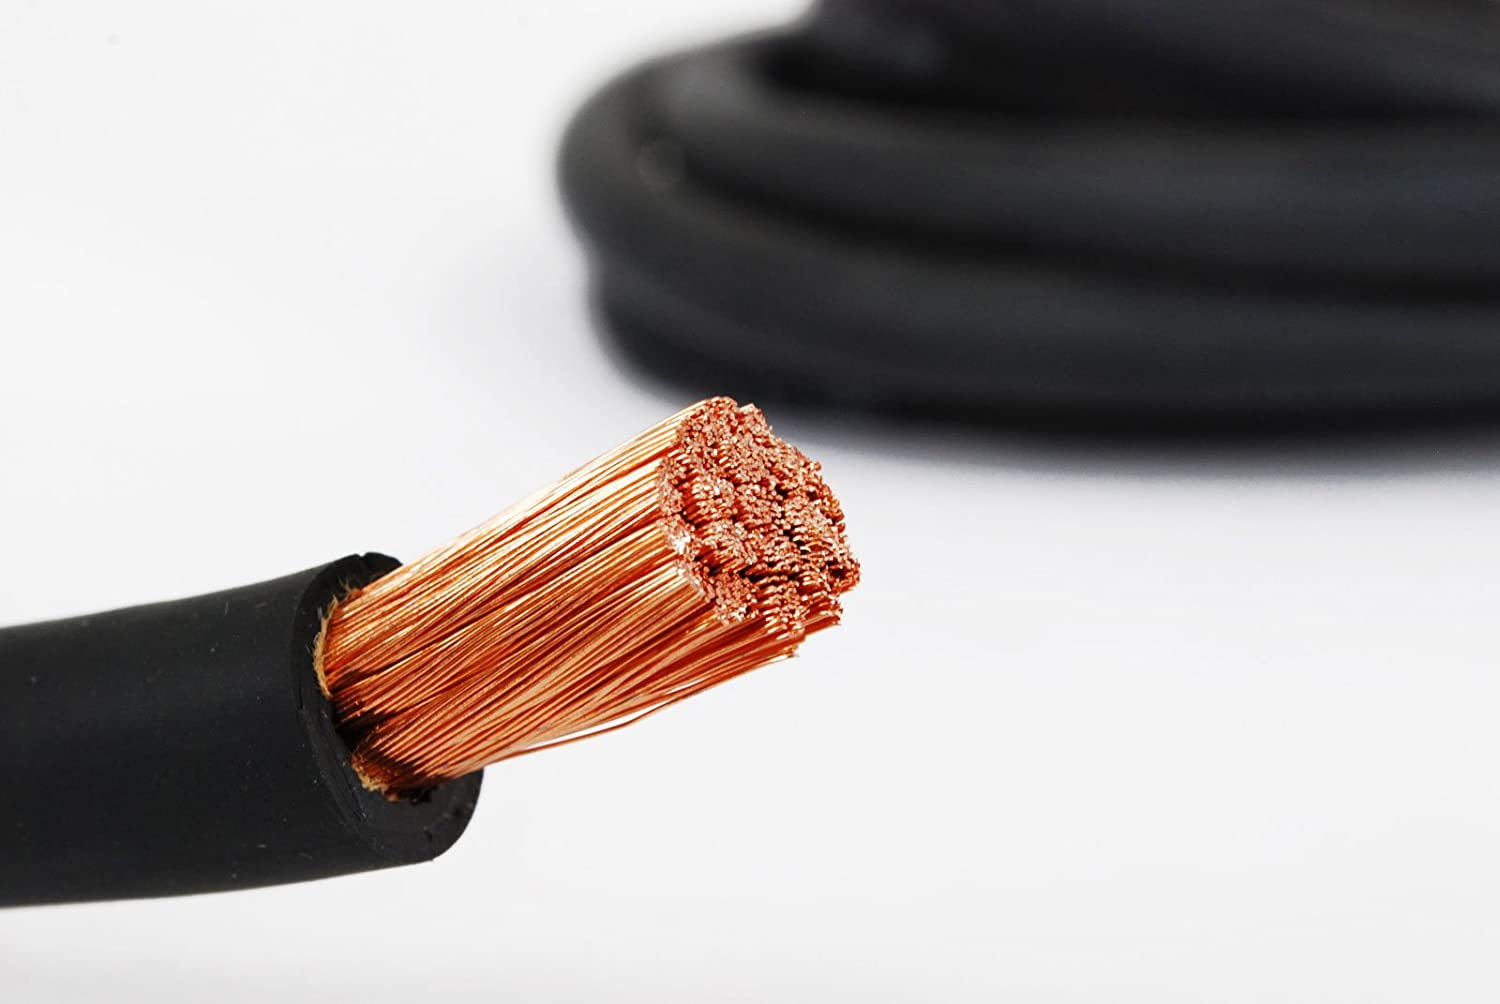 RED MADE IN USA 1 Gauge AWG Welding Lead /& Car Battery Cable Copper Wire BLACK TEMCo WC0251-20 10 Blk, 10 Red